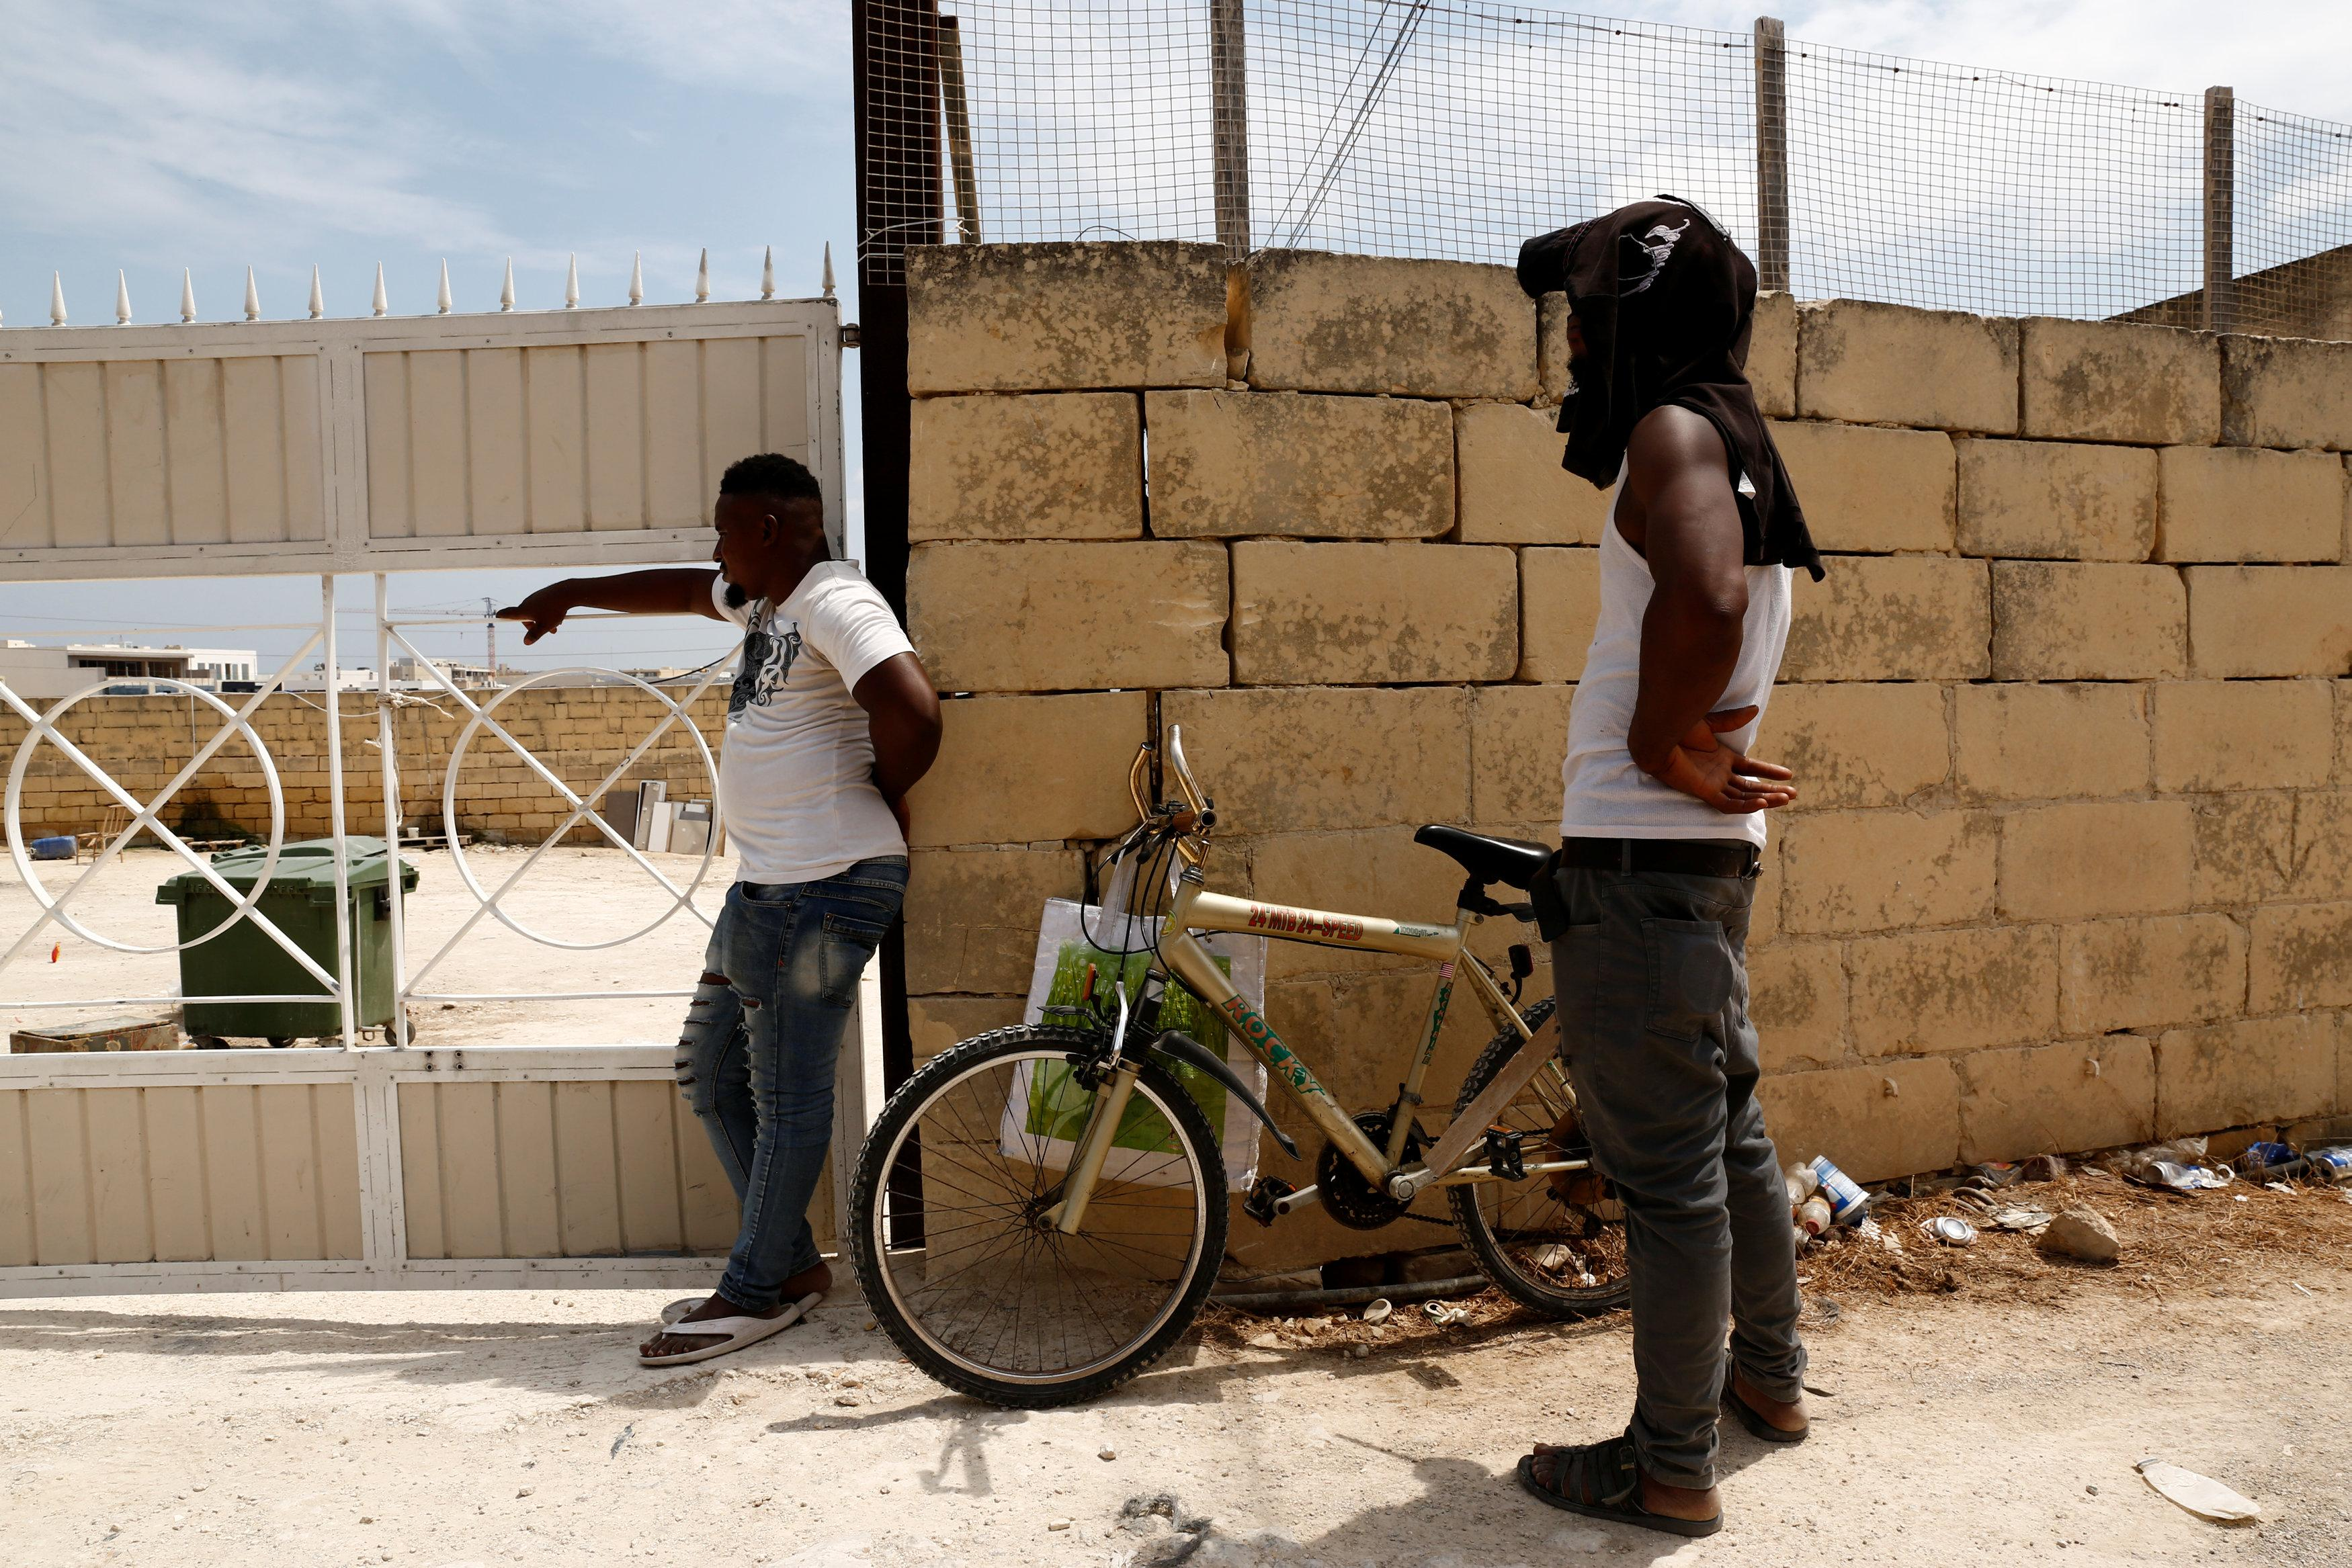 Evicted migrants stand outside a farm where police evicted some 110 African migrants who had been living in stalls formerly used by cows, in Qormi, Malta August 13, 2018.  Darrin Zammit Lupi